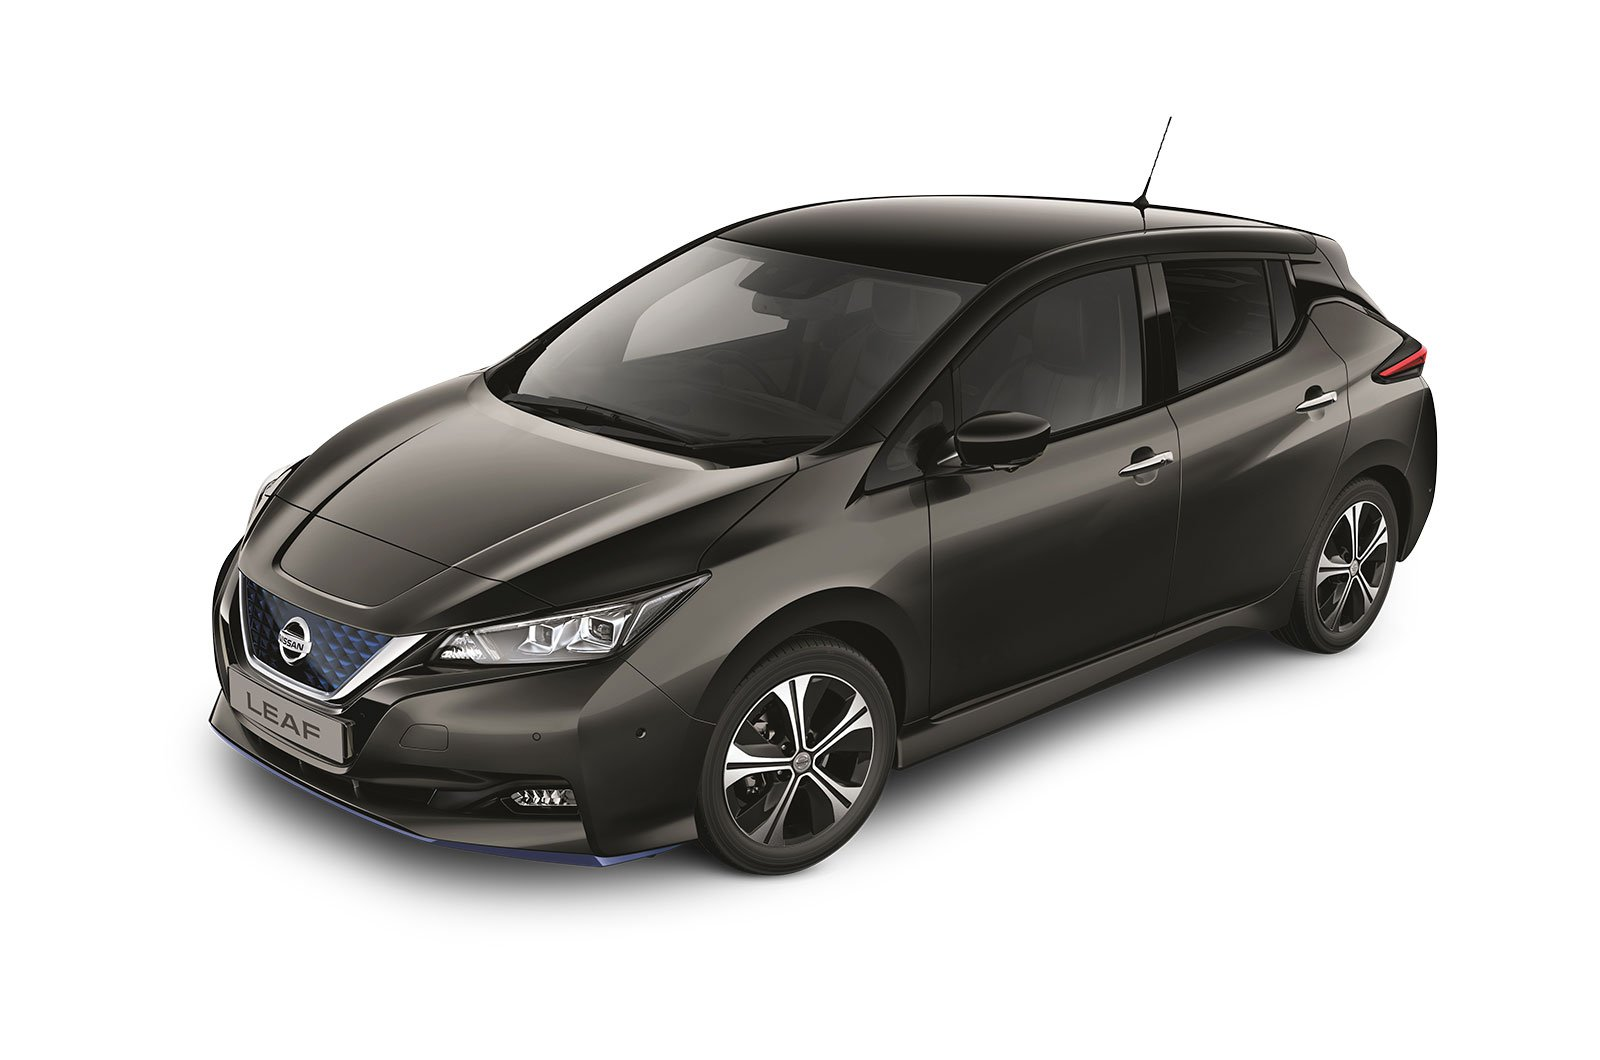 With great range and easy cost-effective charging on all-electric cars like the Nissan LEAF, there are lots of benefits to making the switch ahead of 2030